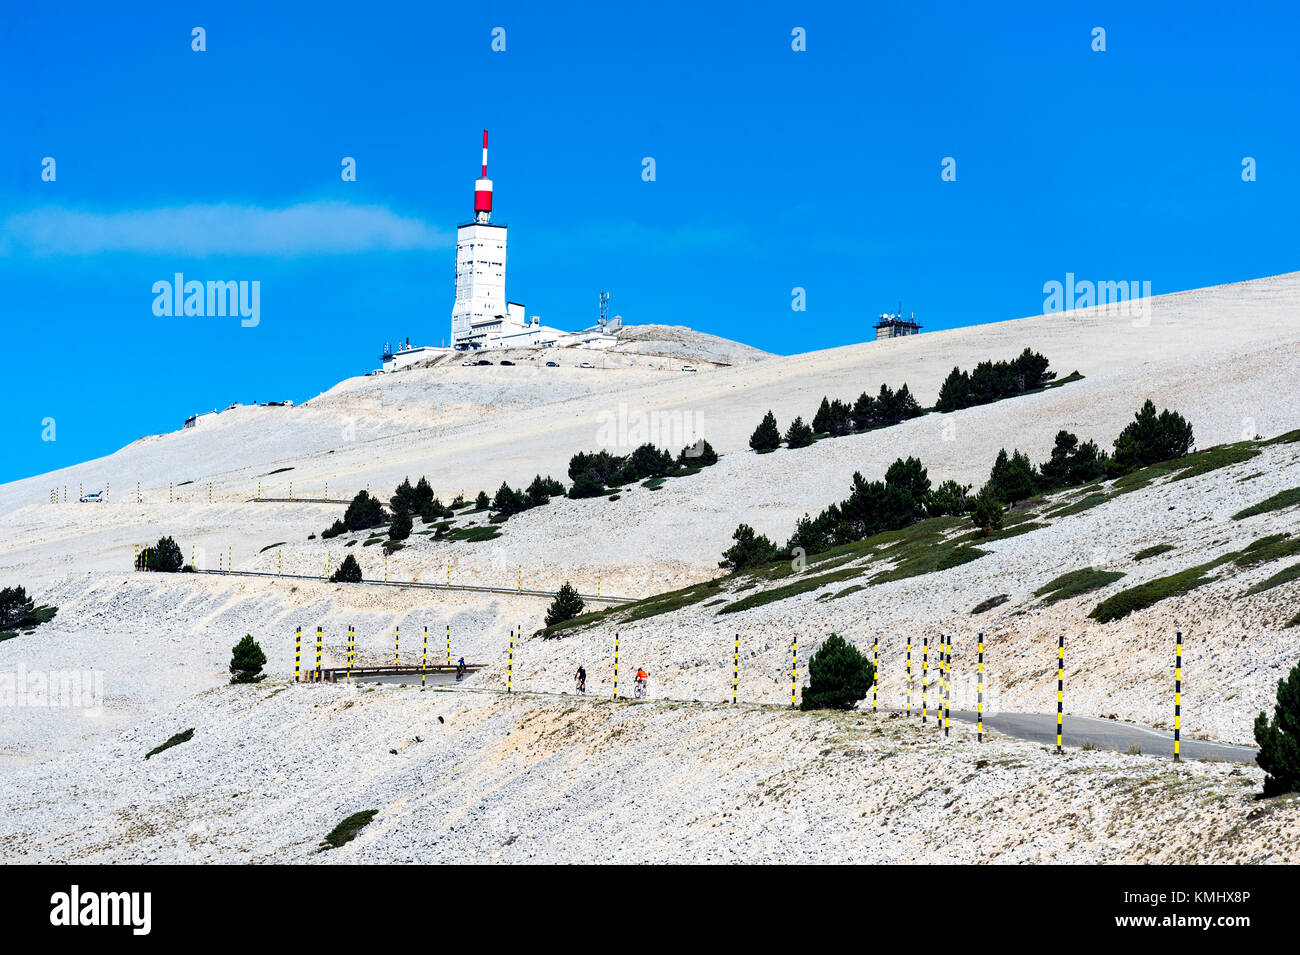 Vaucluse (84). Le Mont Ventoux. La station du Mont Serein // France. Vaucluse (84). The Mont Ventoux. The Mont Serein - Stock Image